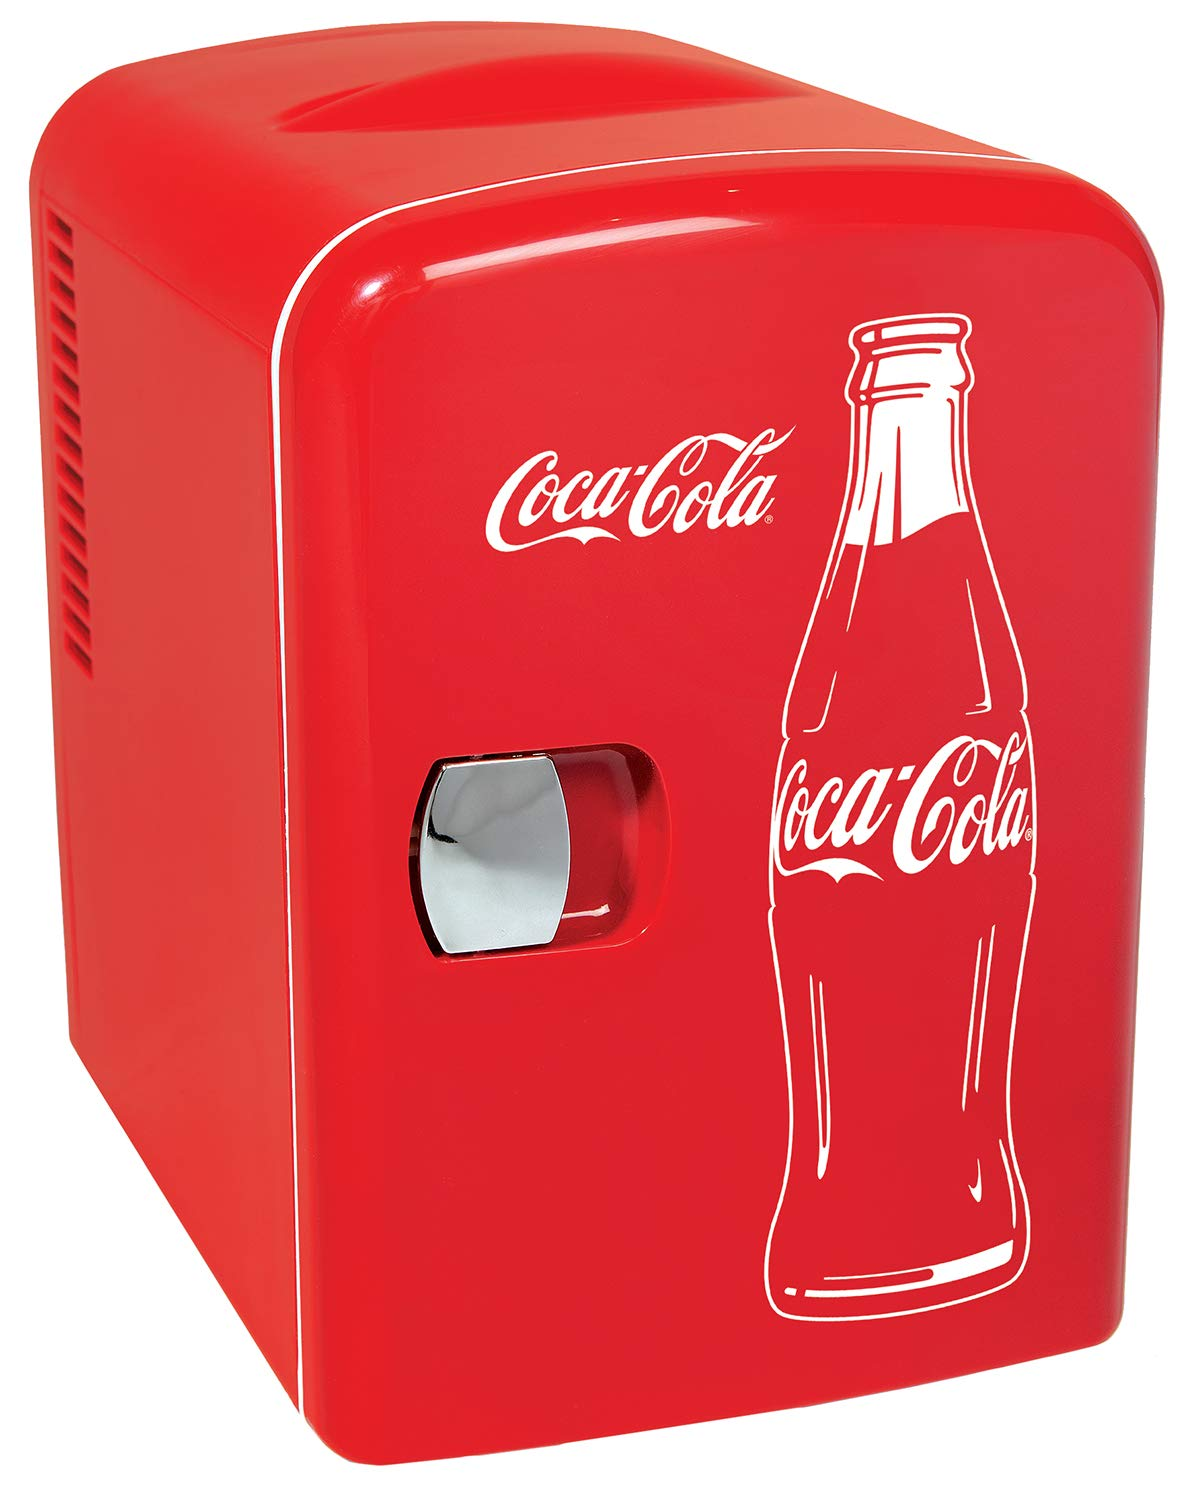 Coca Cola KWC 4C Cooler Mini Fridge